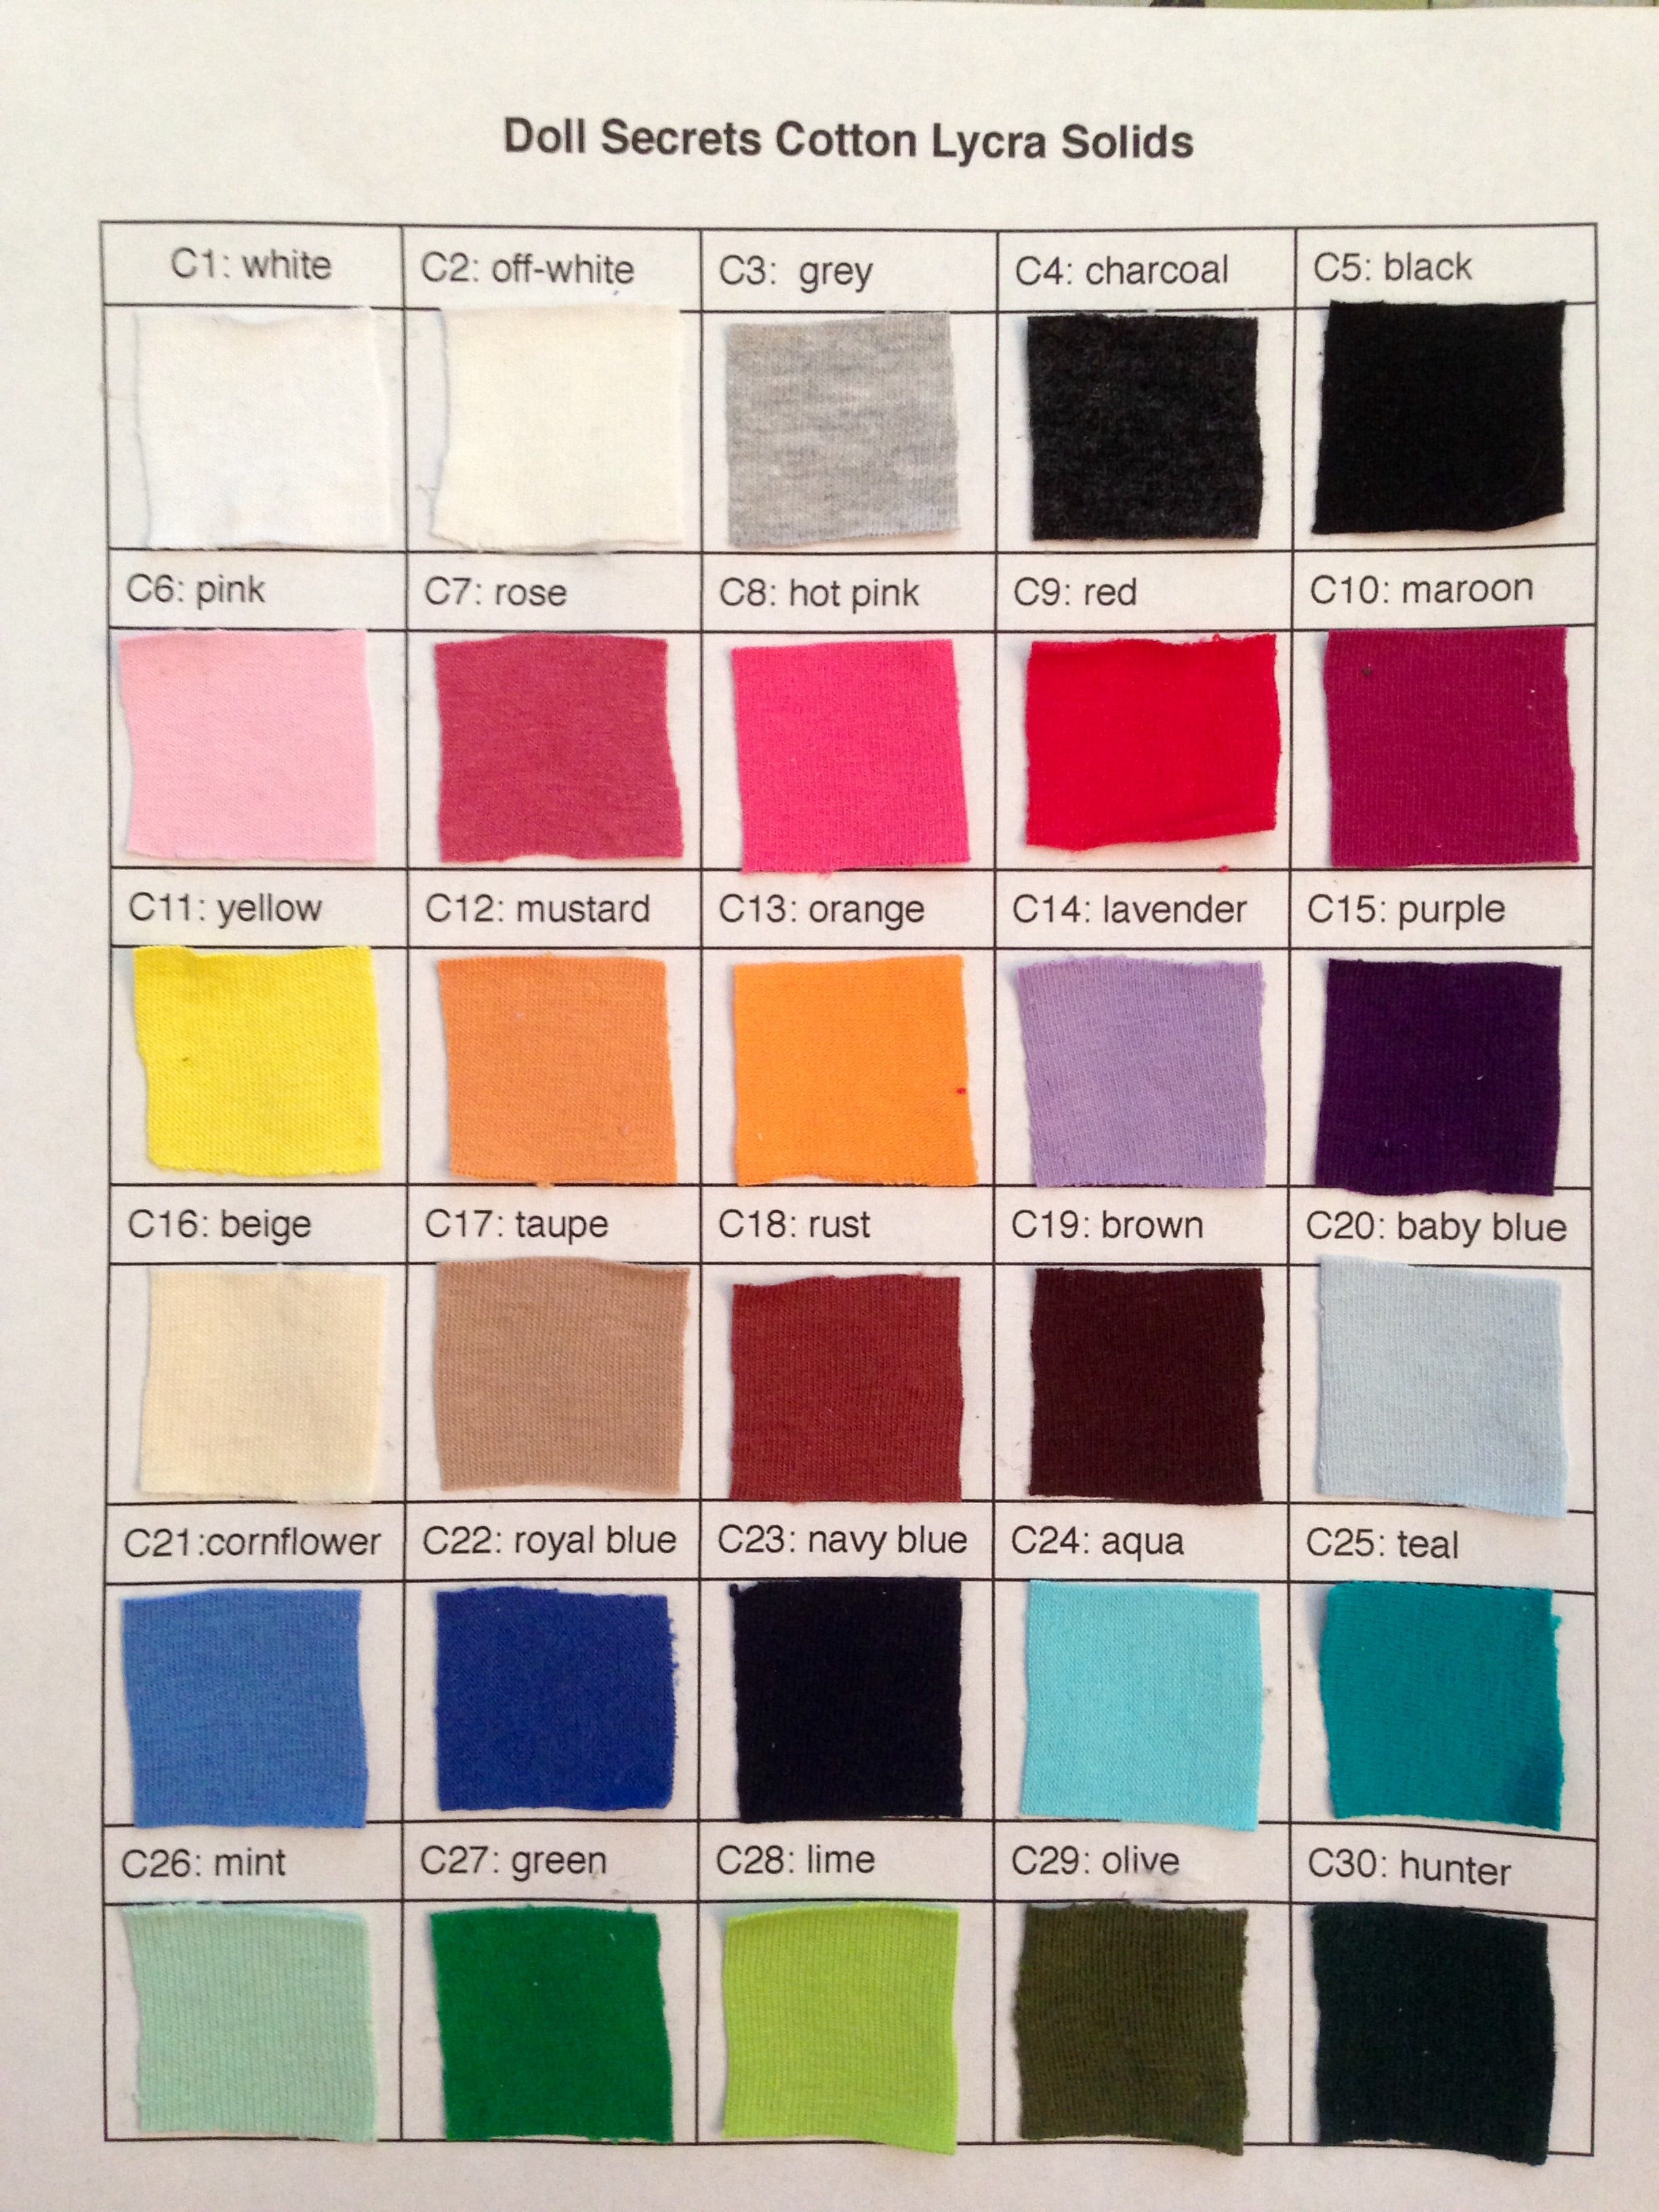 Cotton Lycra Solid Fabrics